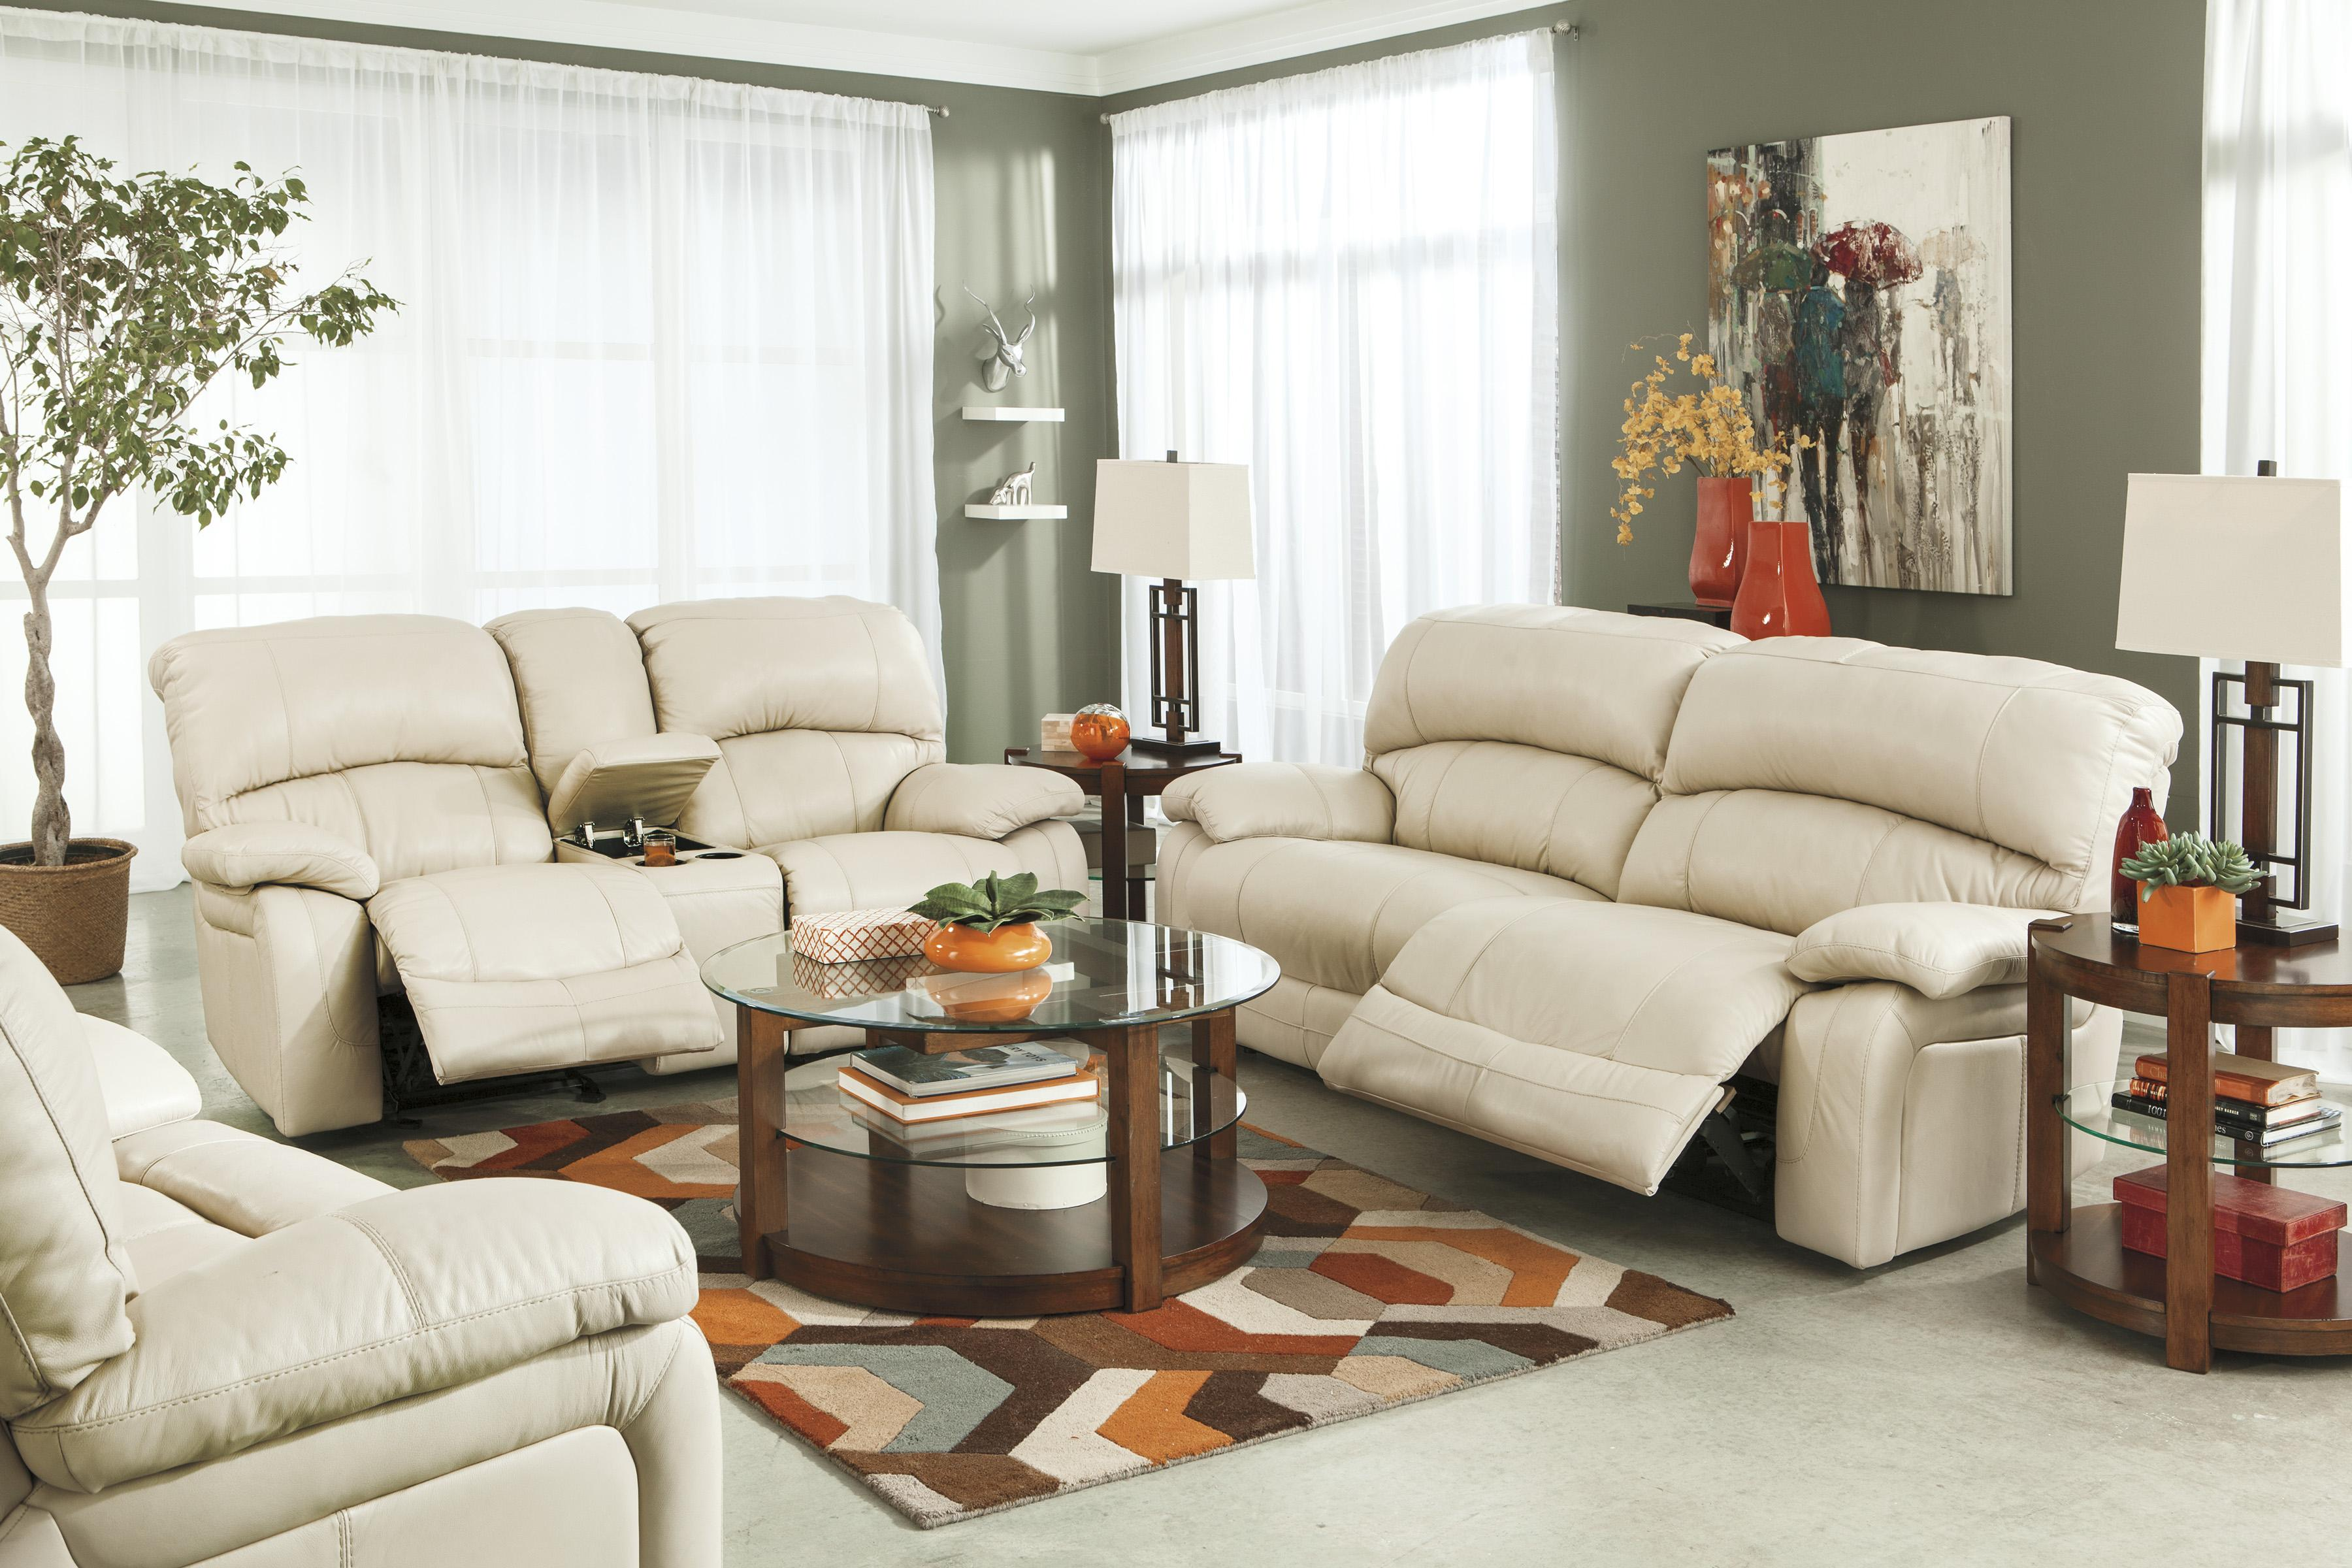 Signature Design by Ashley Damacio - Cream Reclining Living Room Group - Item Number: U98201 Living Room Group 3